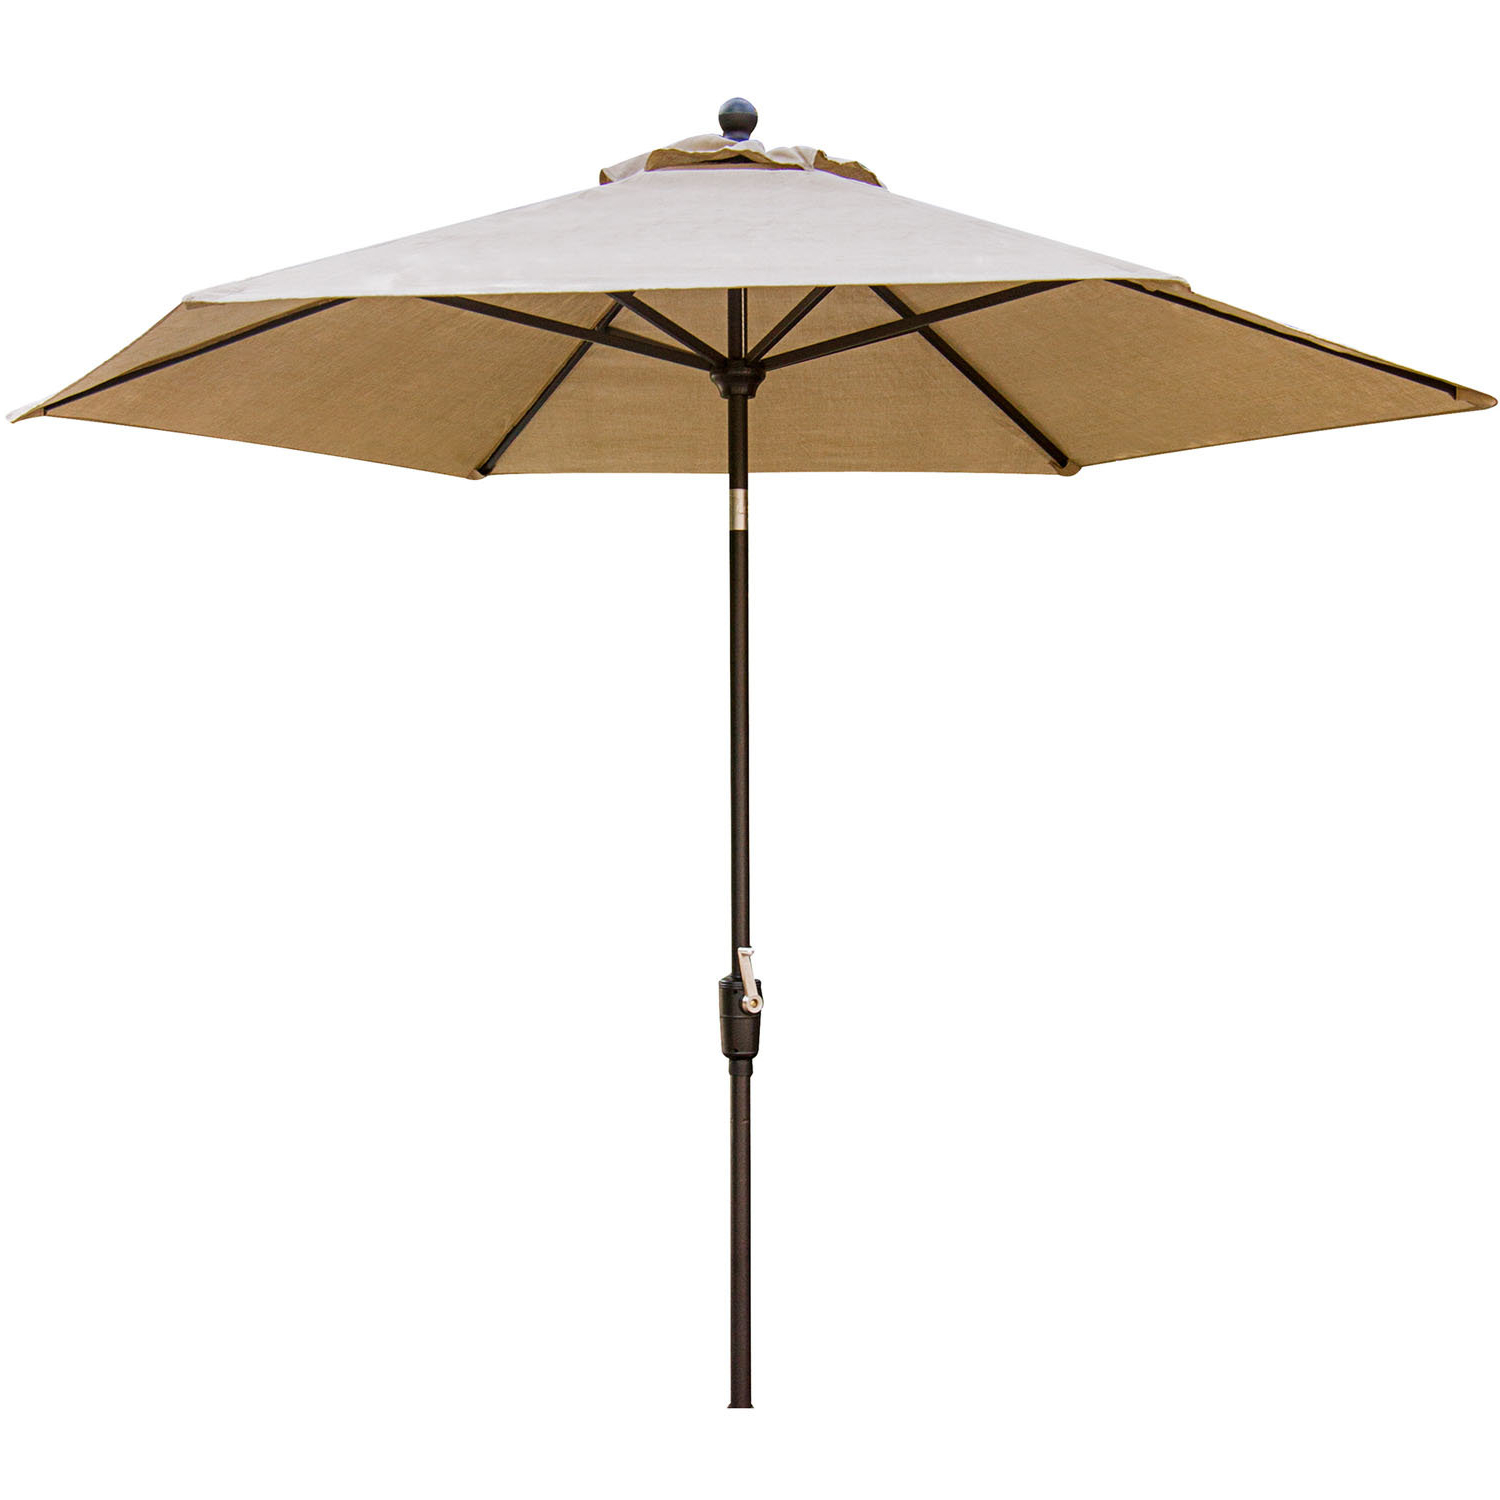 Annia 11' Market Umbrella In Most Recently Released Bradford Rectangular Market Umbrellas (View 10 of 20)